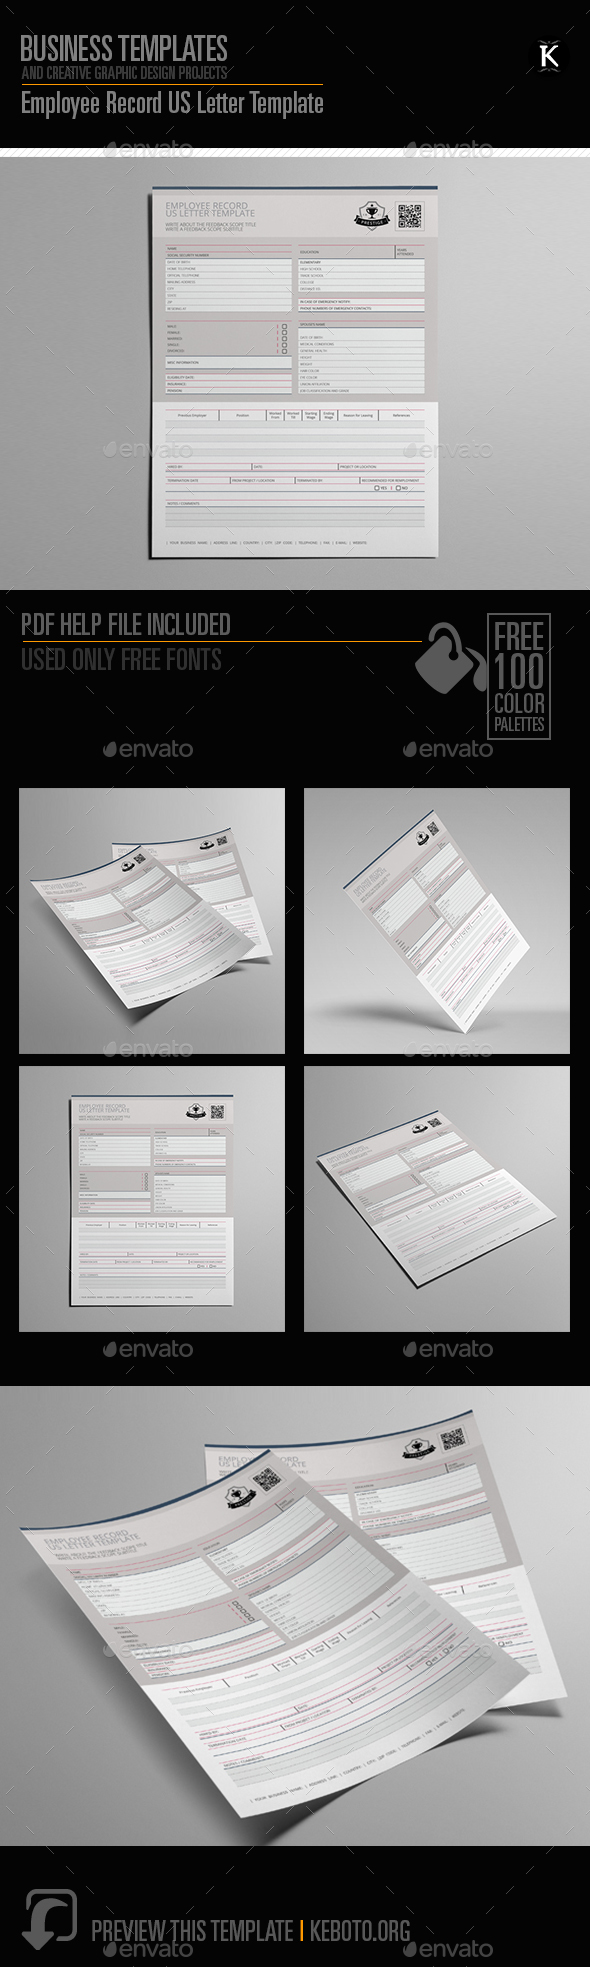 Employee Record US Letter Template - Miscellaneous Print Templates